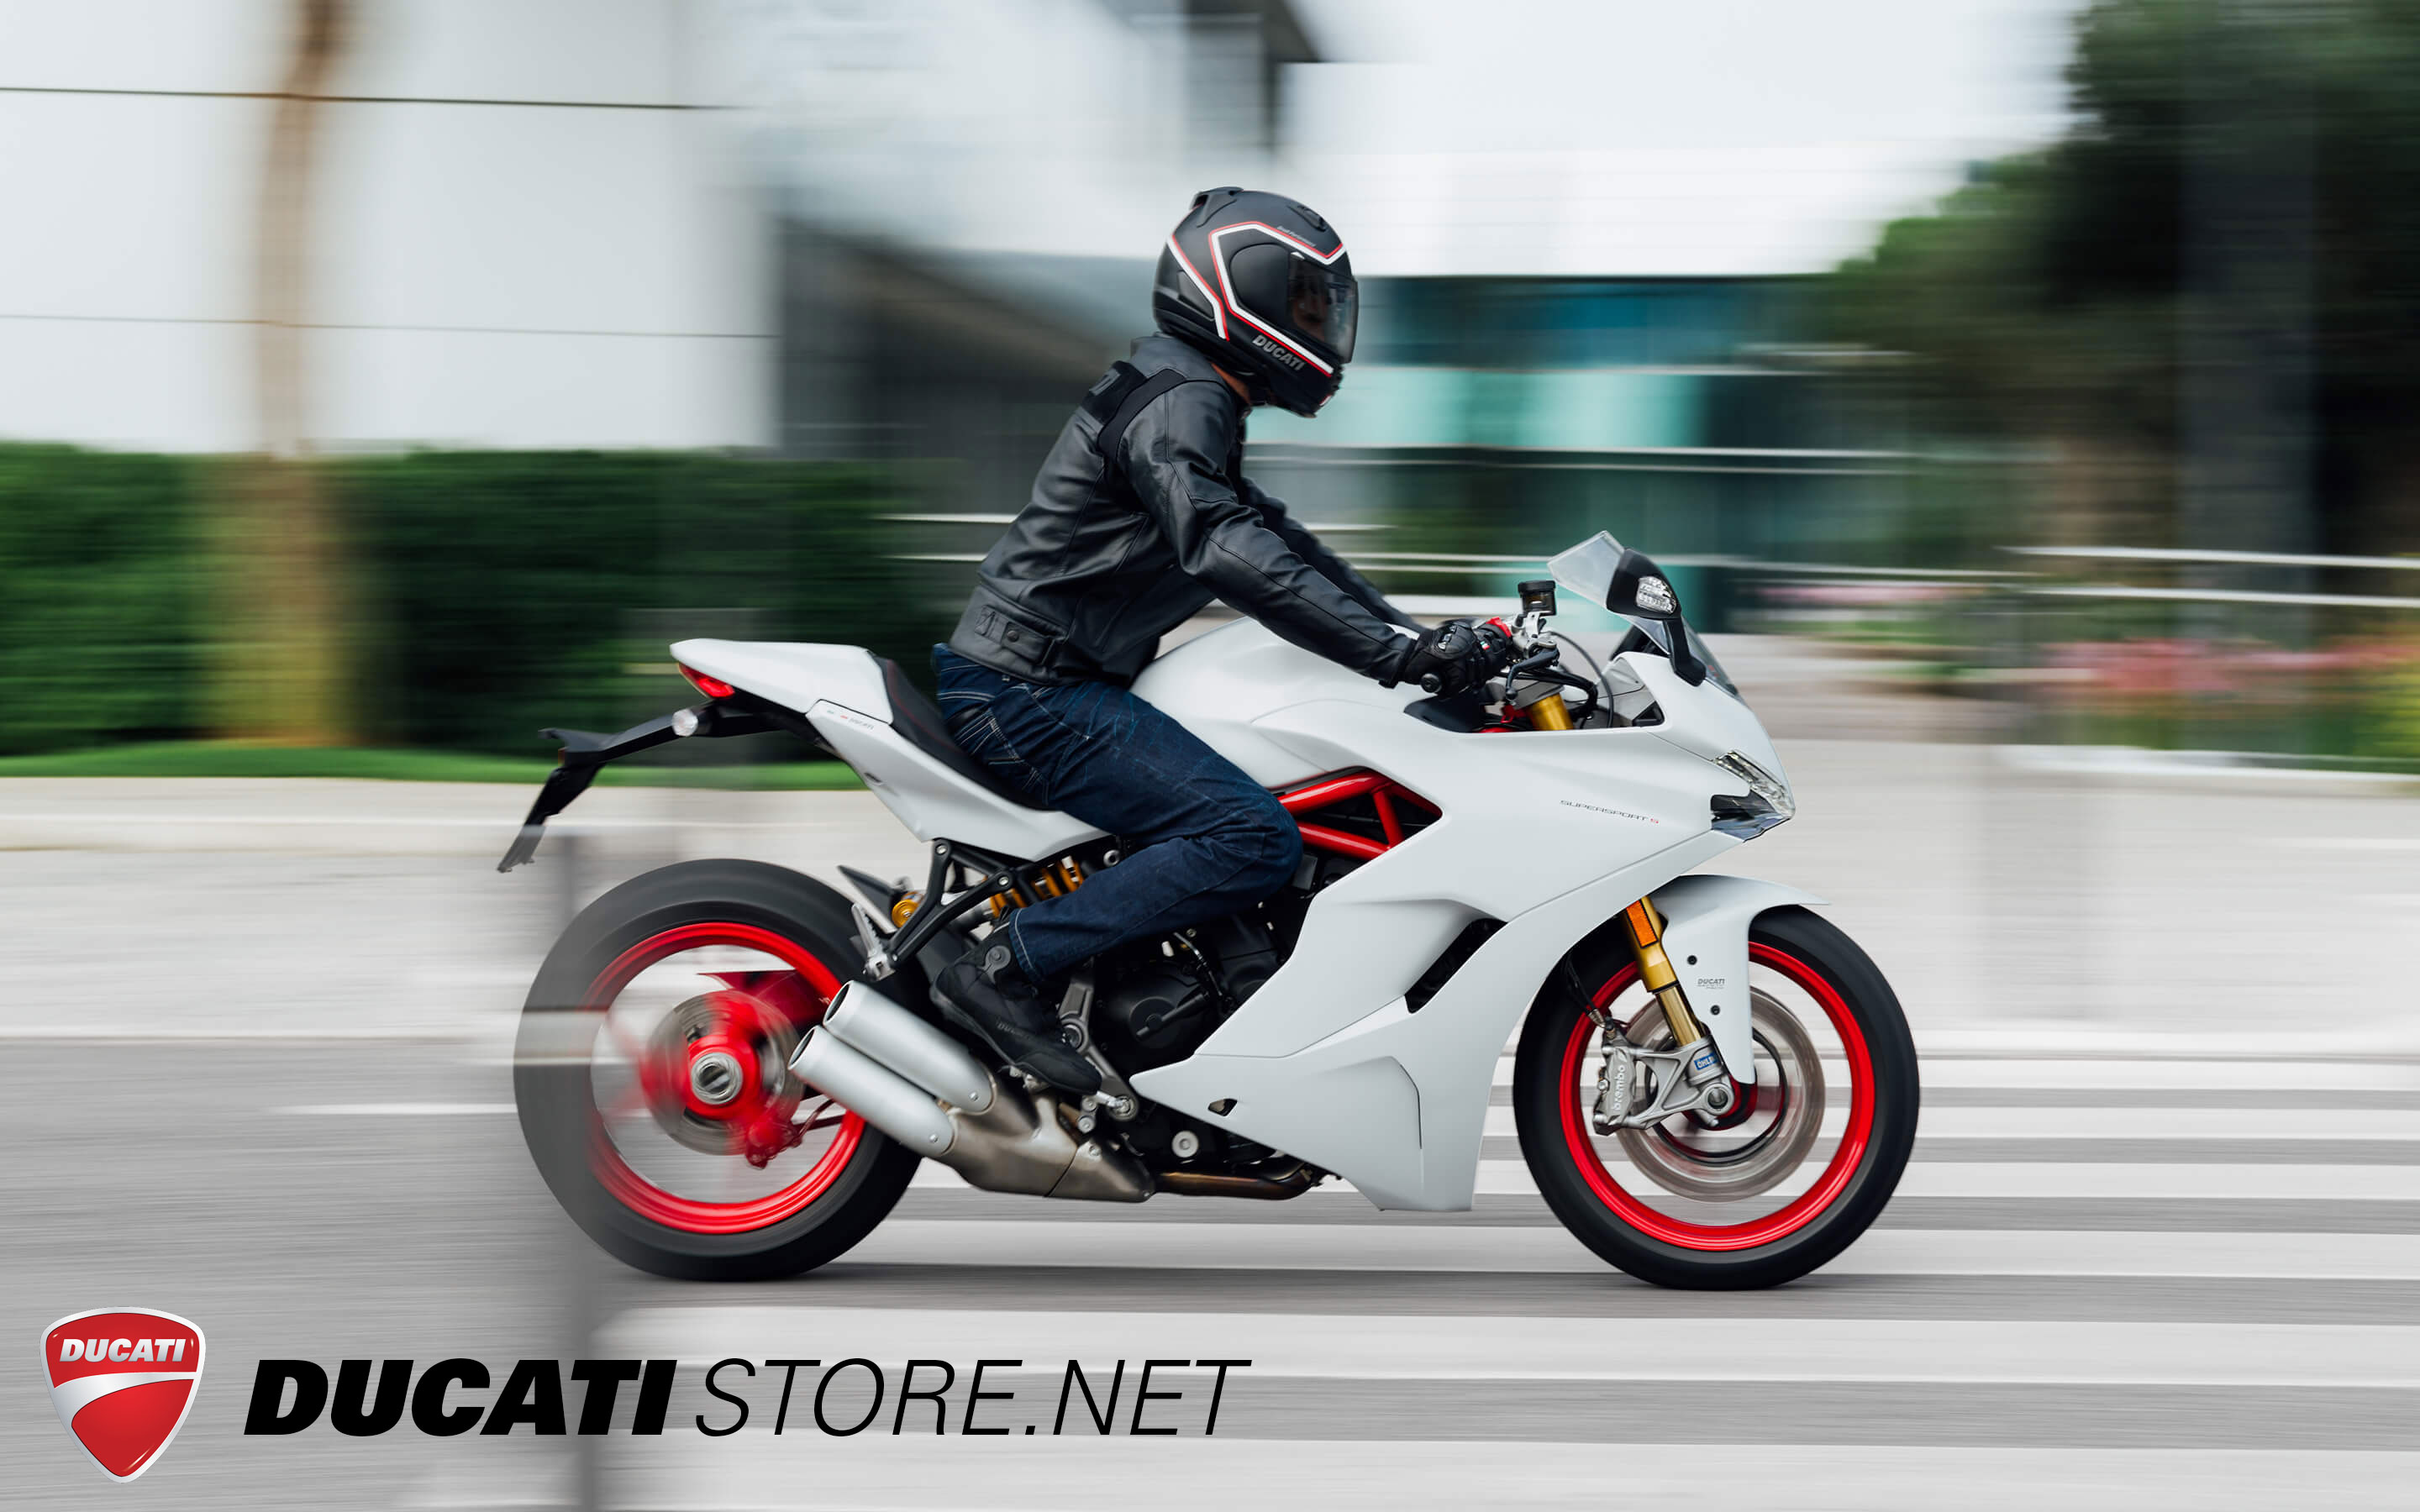 ducati supersport for sale ducati manchester uk. Black Bedroom Furniture Sets. Home Design Ideas